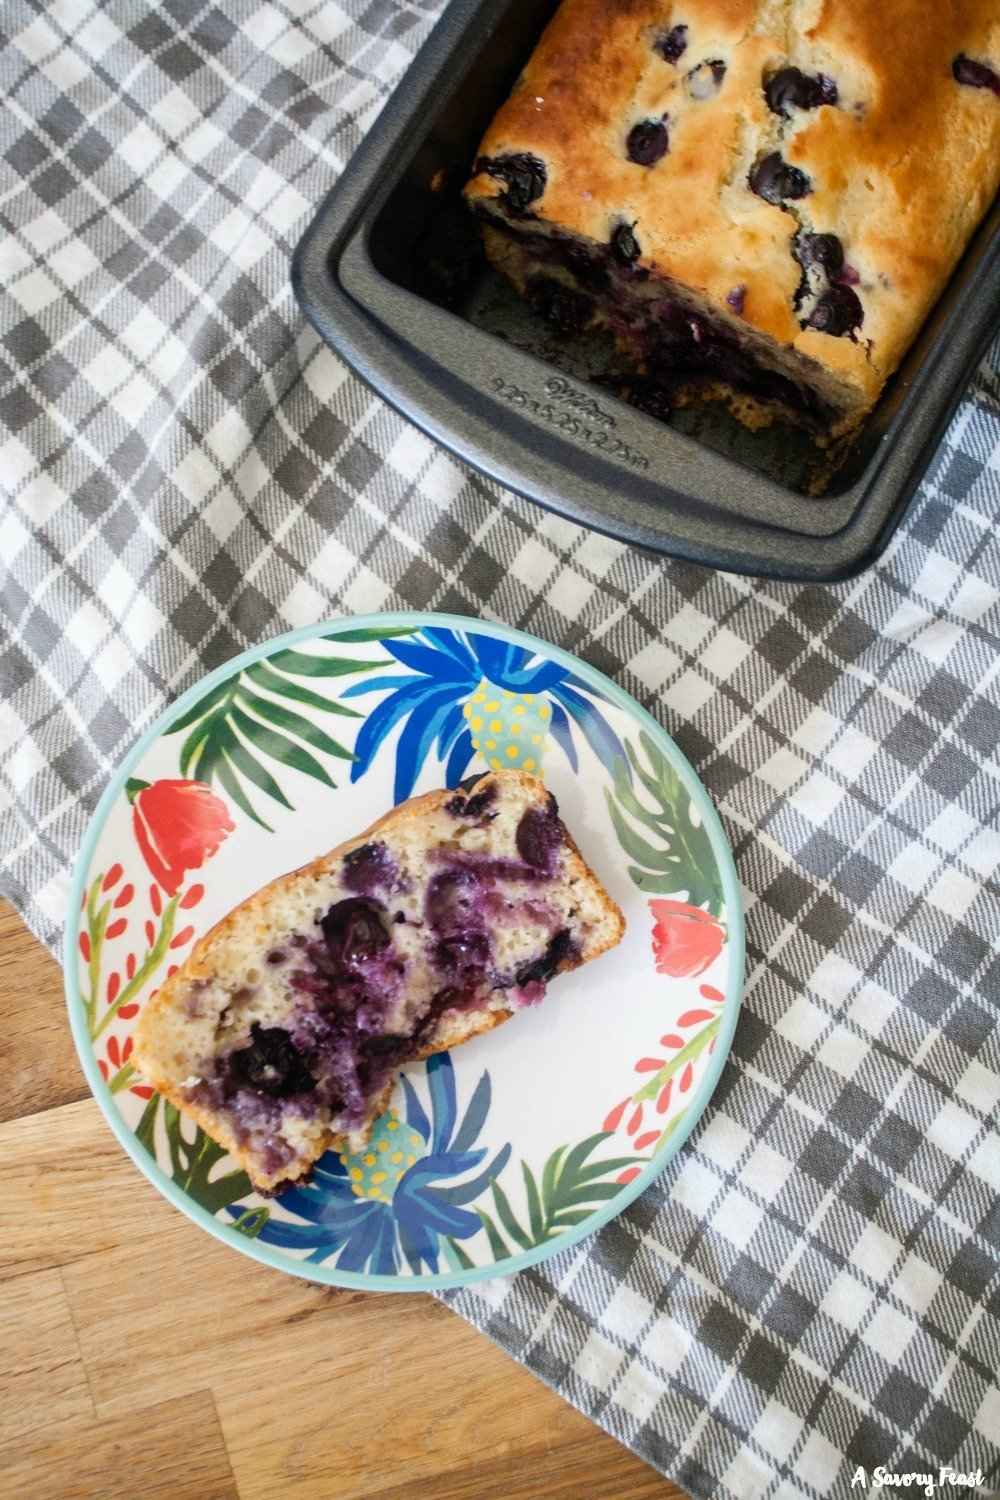 Greek Yogurt Blueberry Bread is such a yummy grab-and-go breakfast idea!